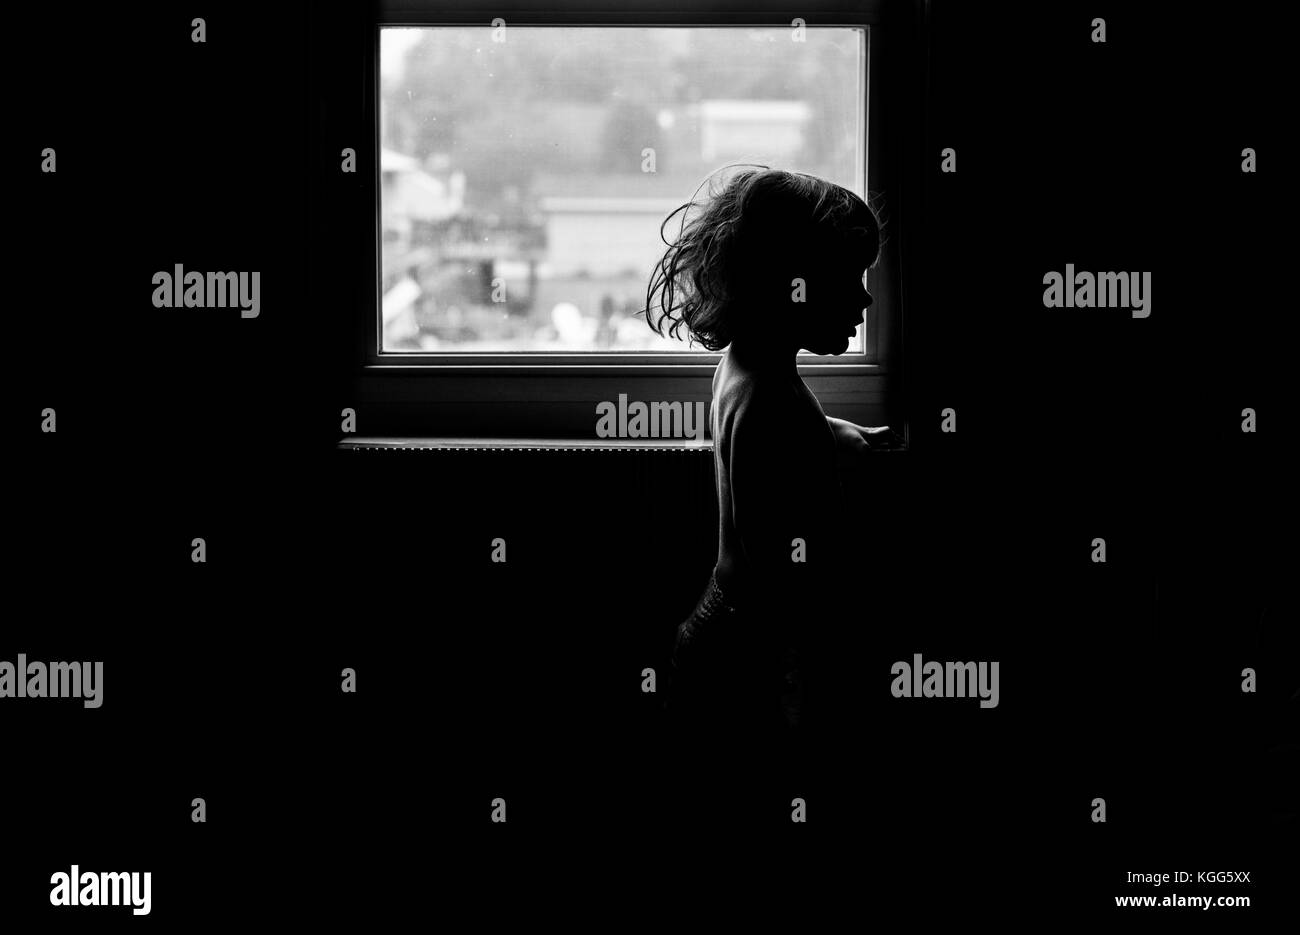 silhouette of a toddler against a window - Stock Image